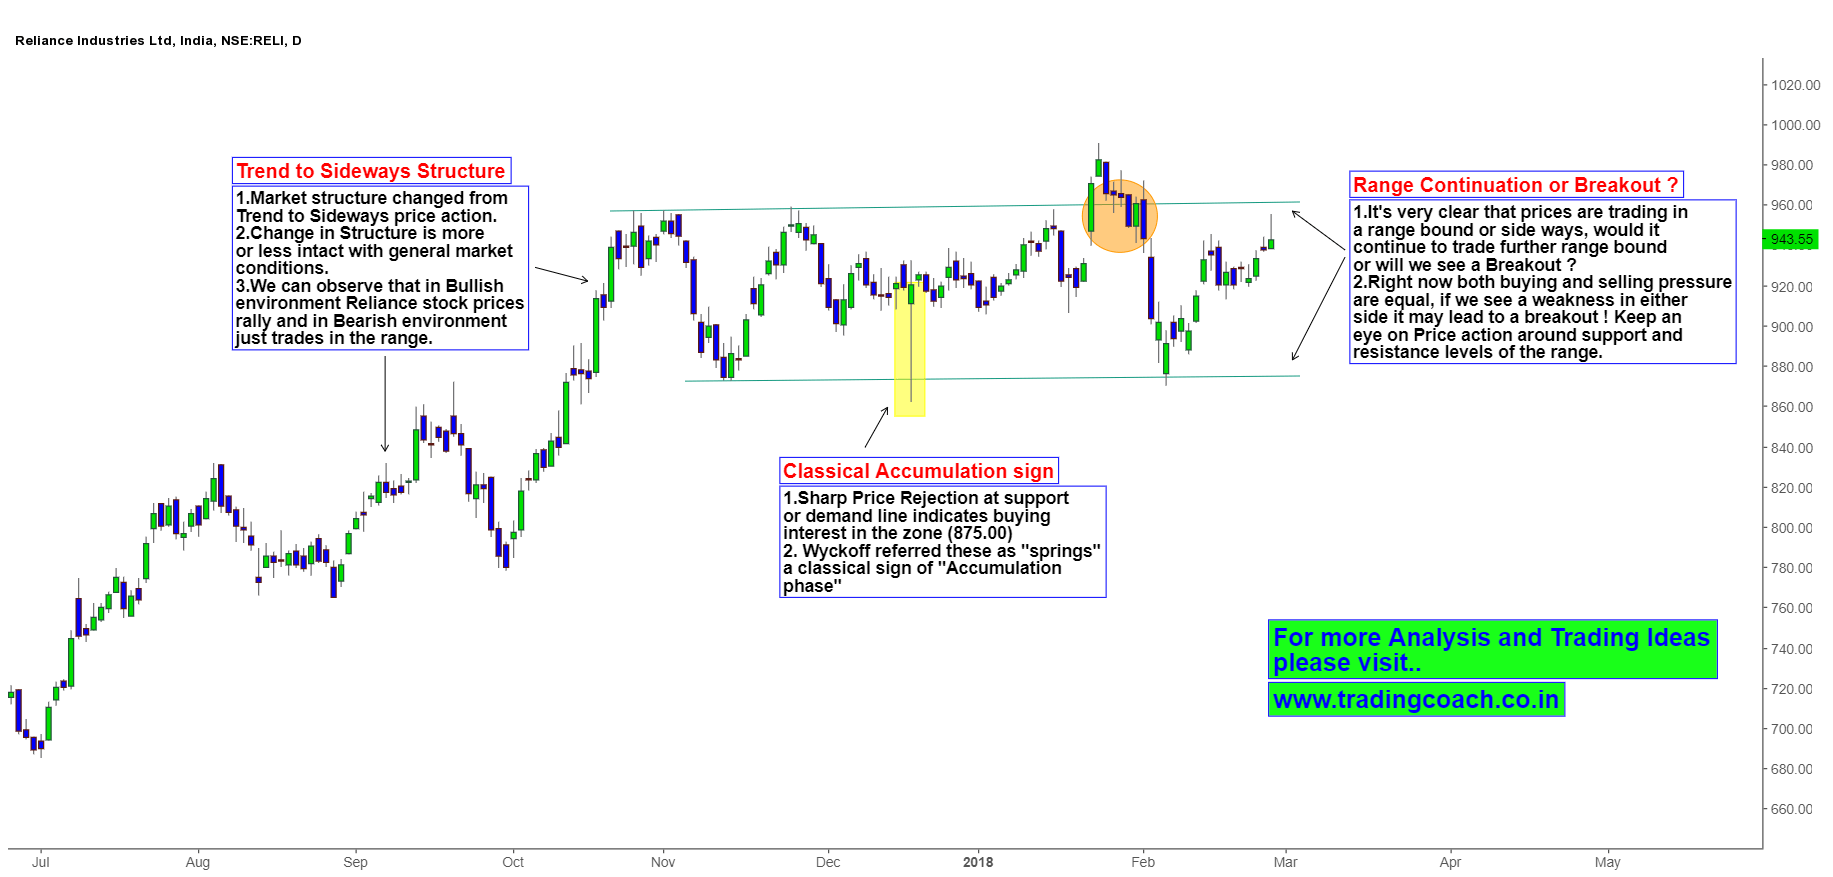 Reliance Shares - Price action trading in a range